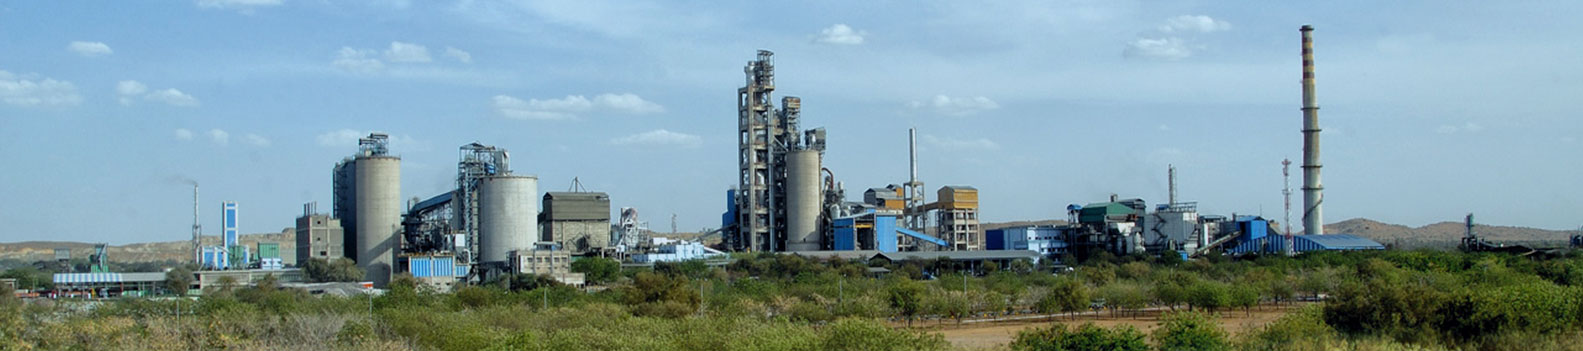 Ambuja Cement aspires to be the most competitive and sustainable company in the cement manufacturing industry